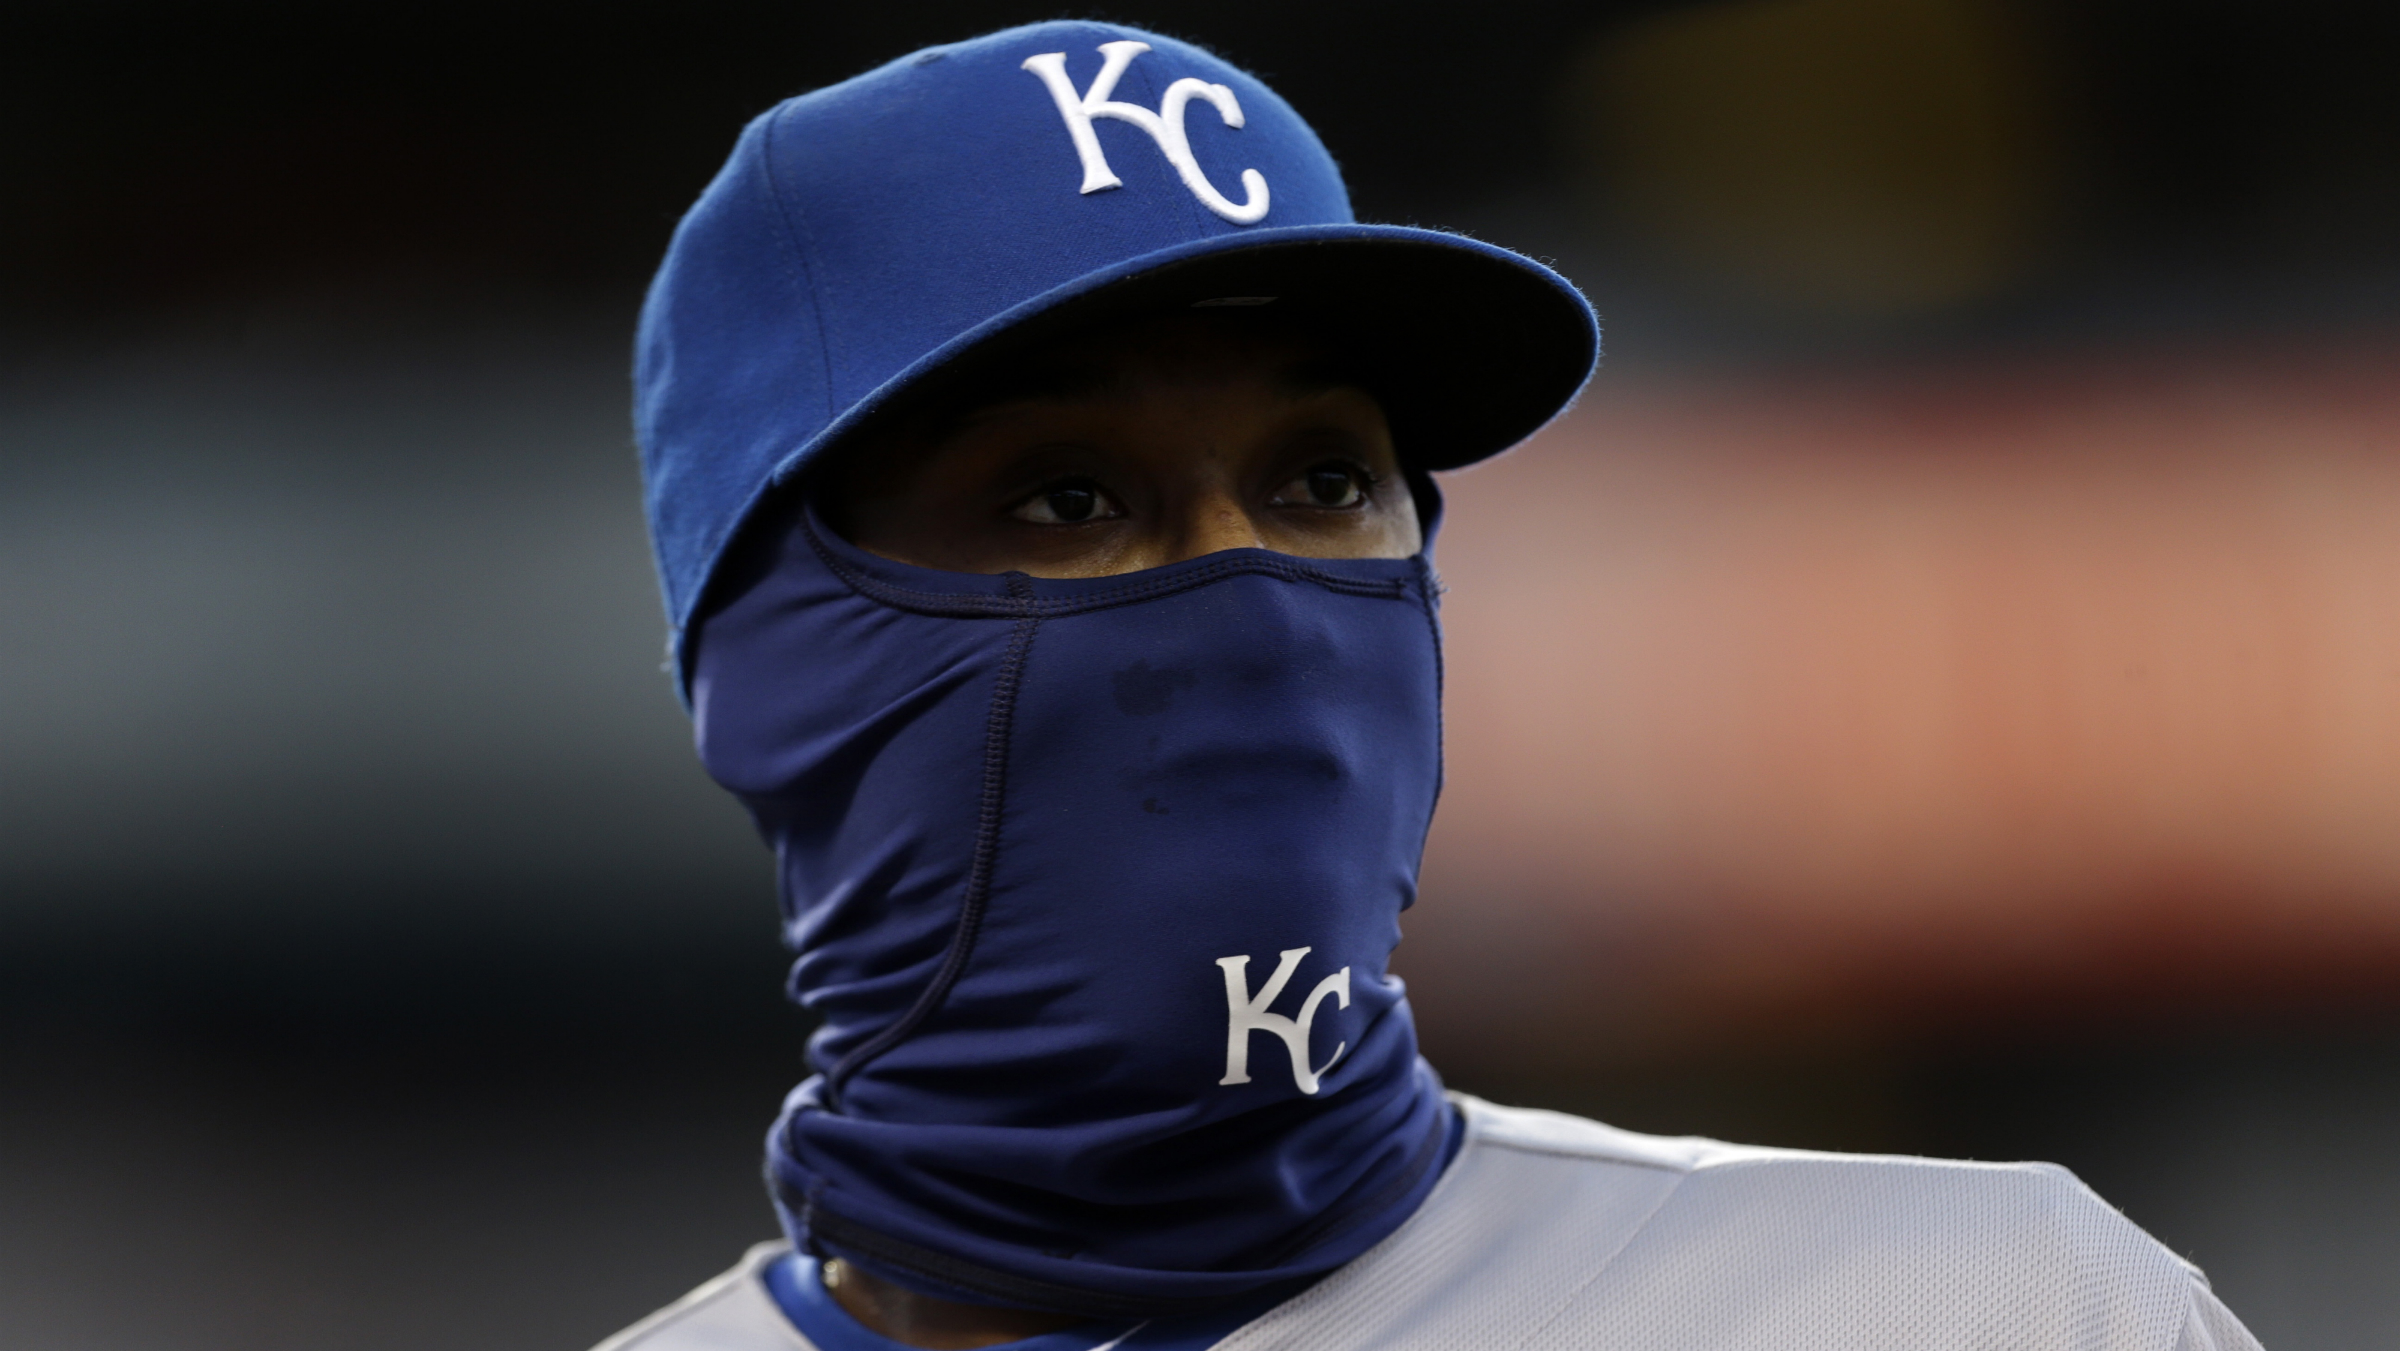 So cold, even the baseball players wear ski masks.